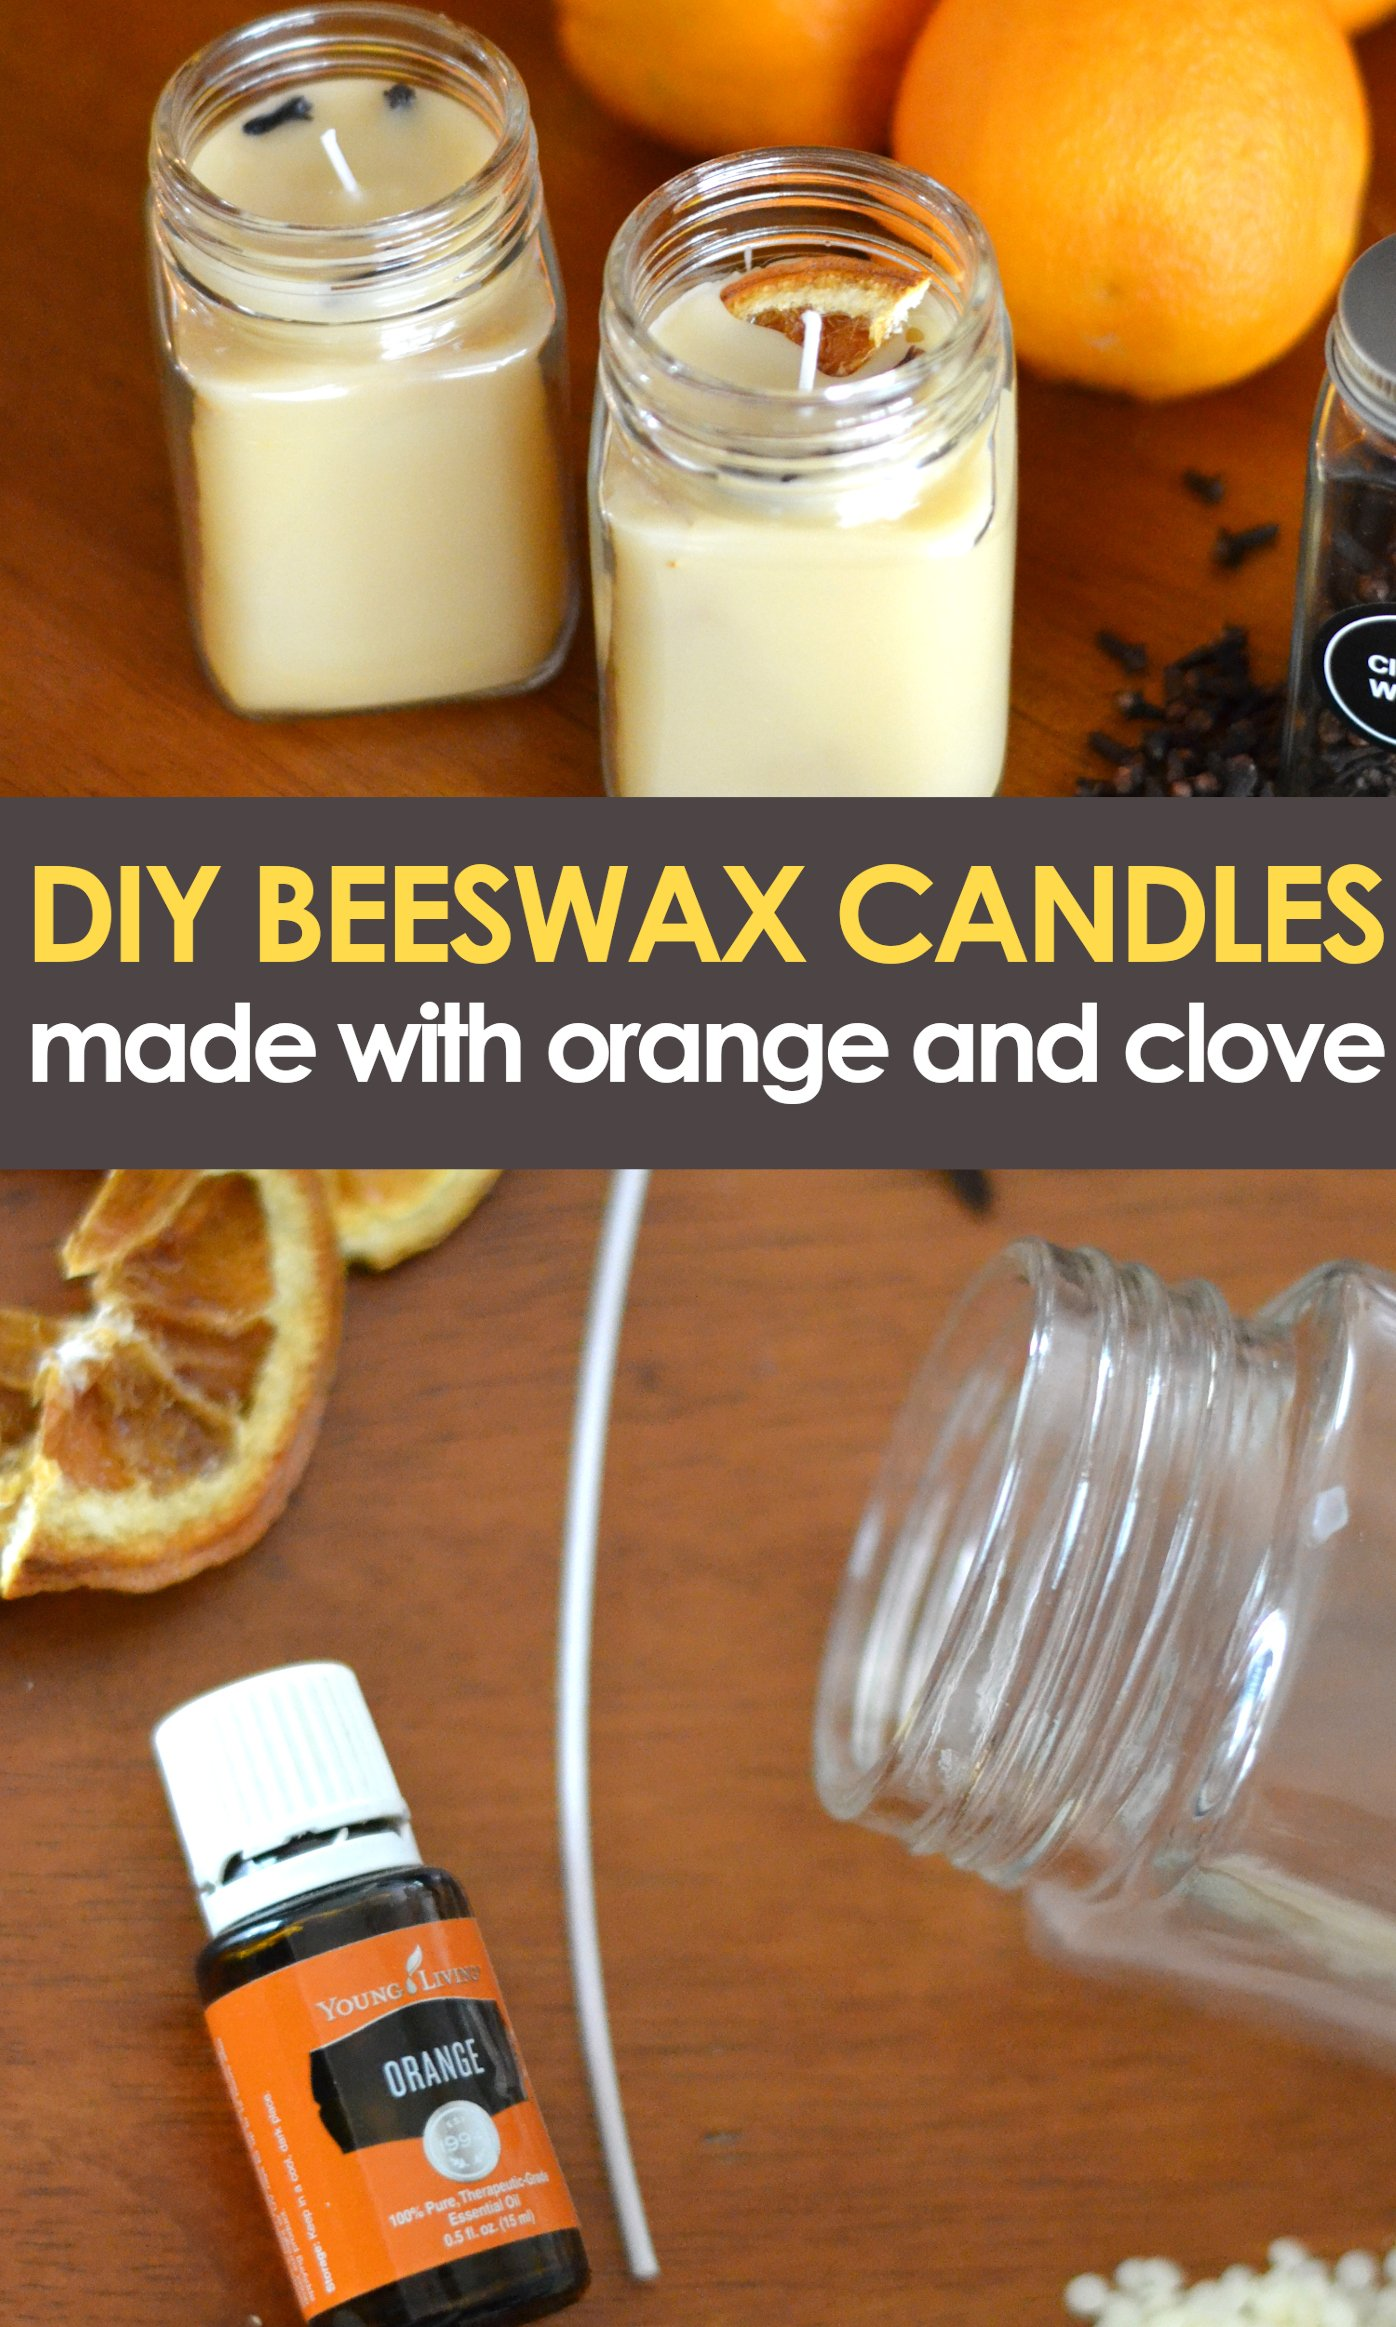 DIY Orange clove beeswax candles pinnable image with text overlay